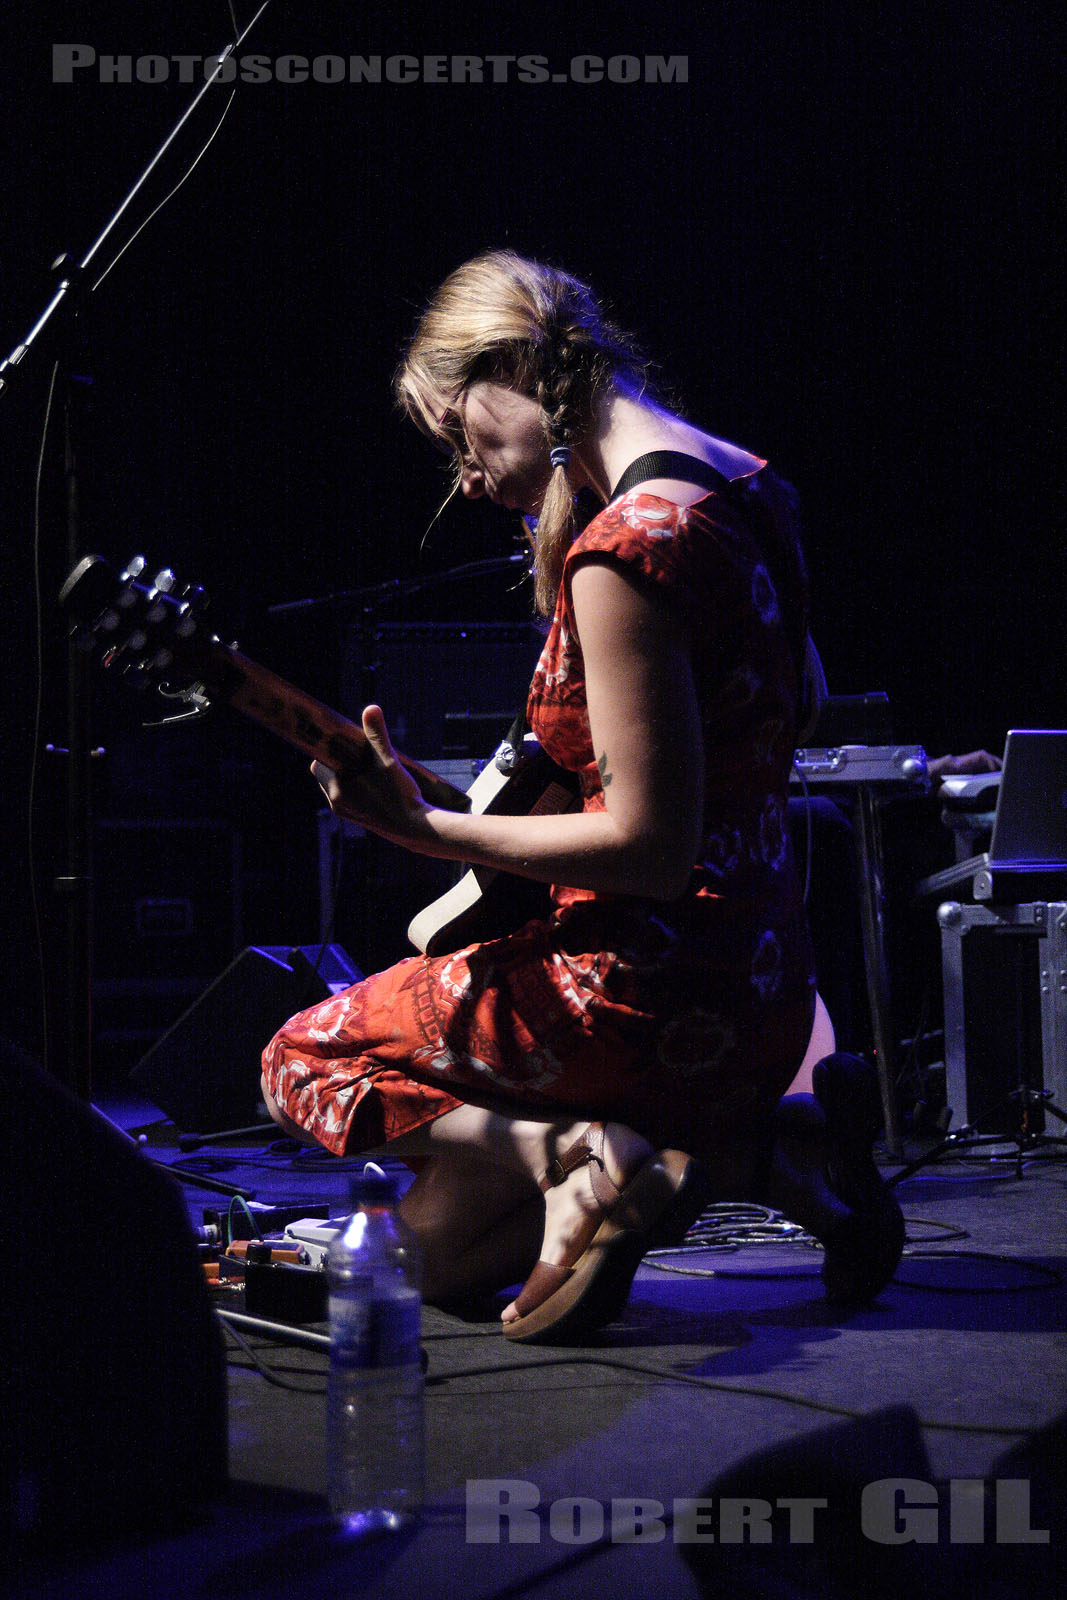 LAURA VEIRS AND THE TORTURED SOULS - 2005-10-05 - PARIS - La Cigale